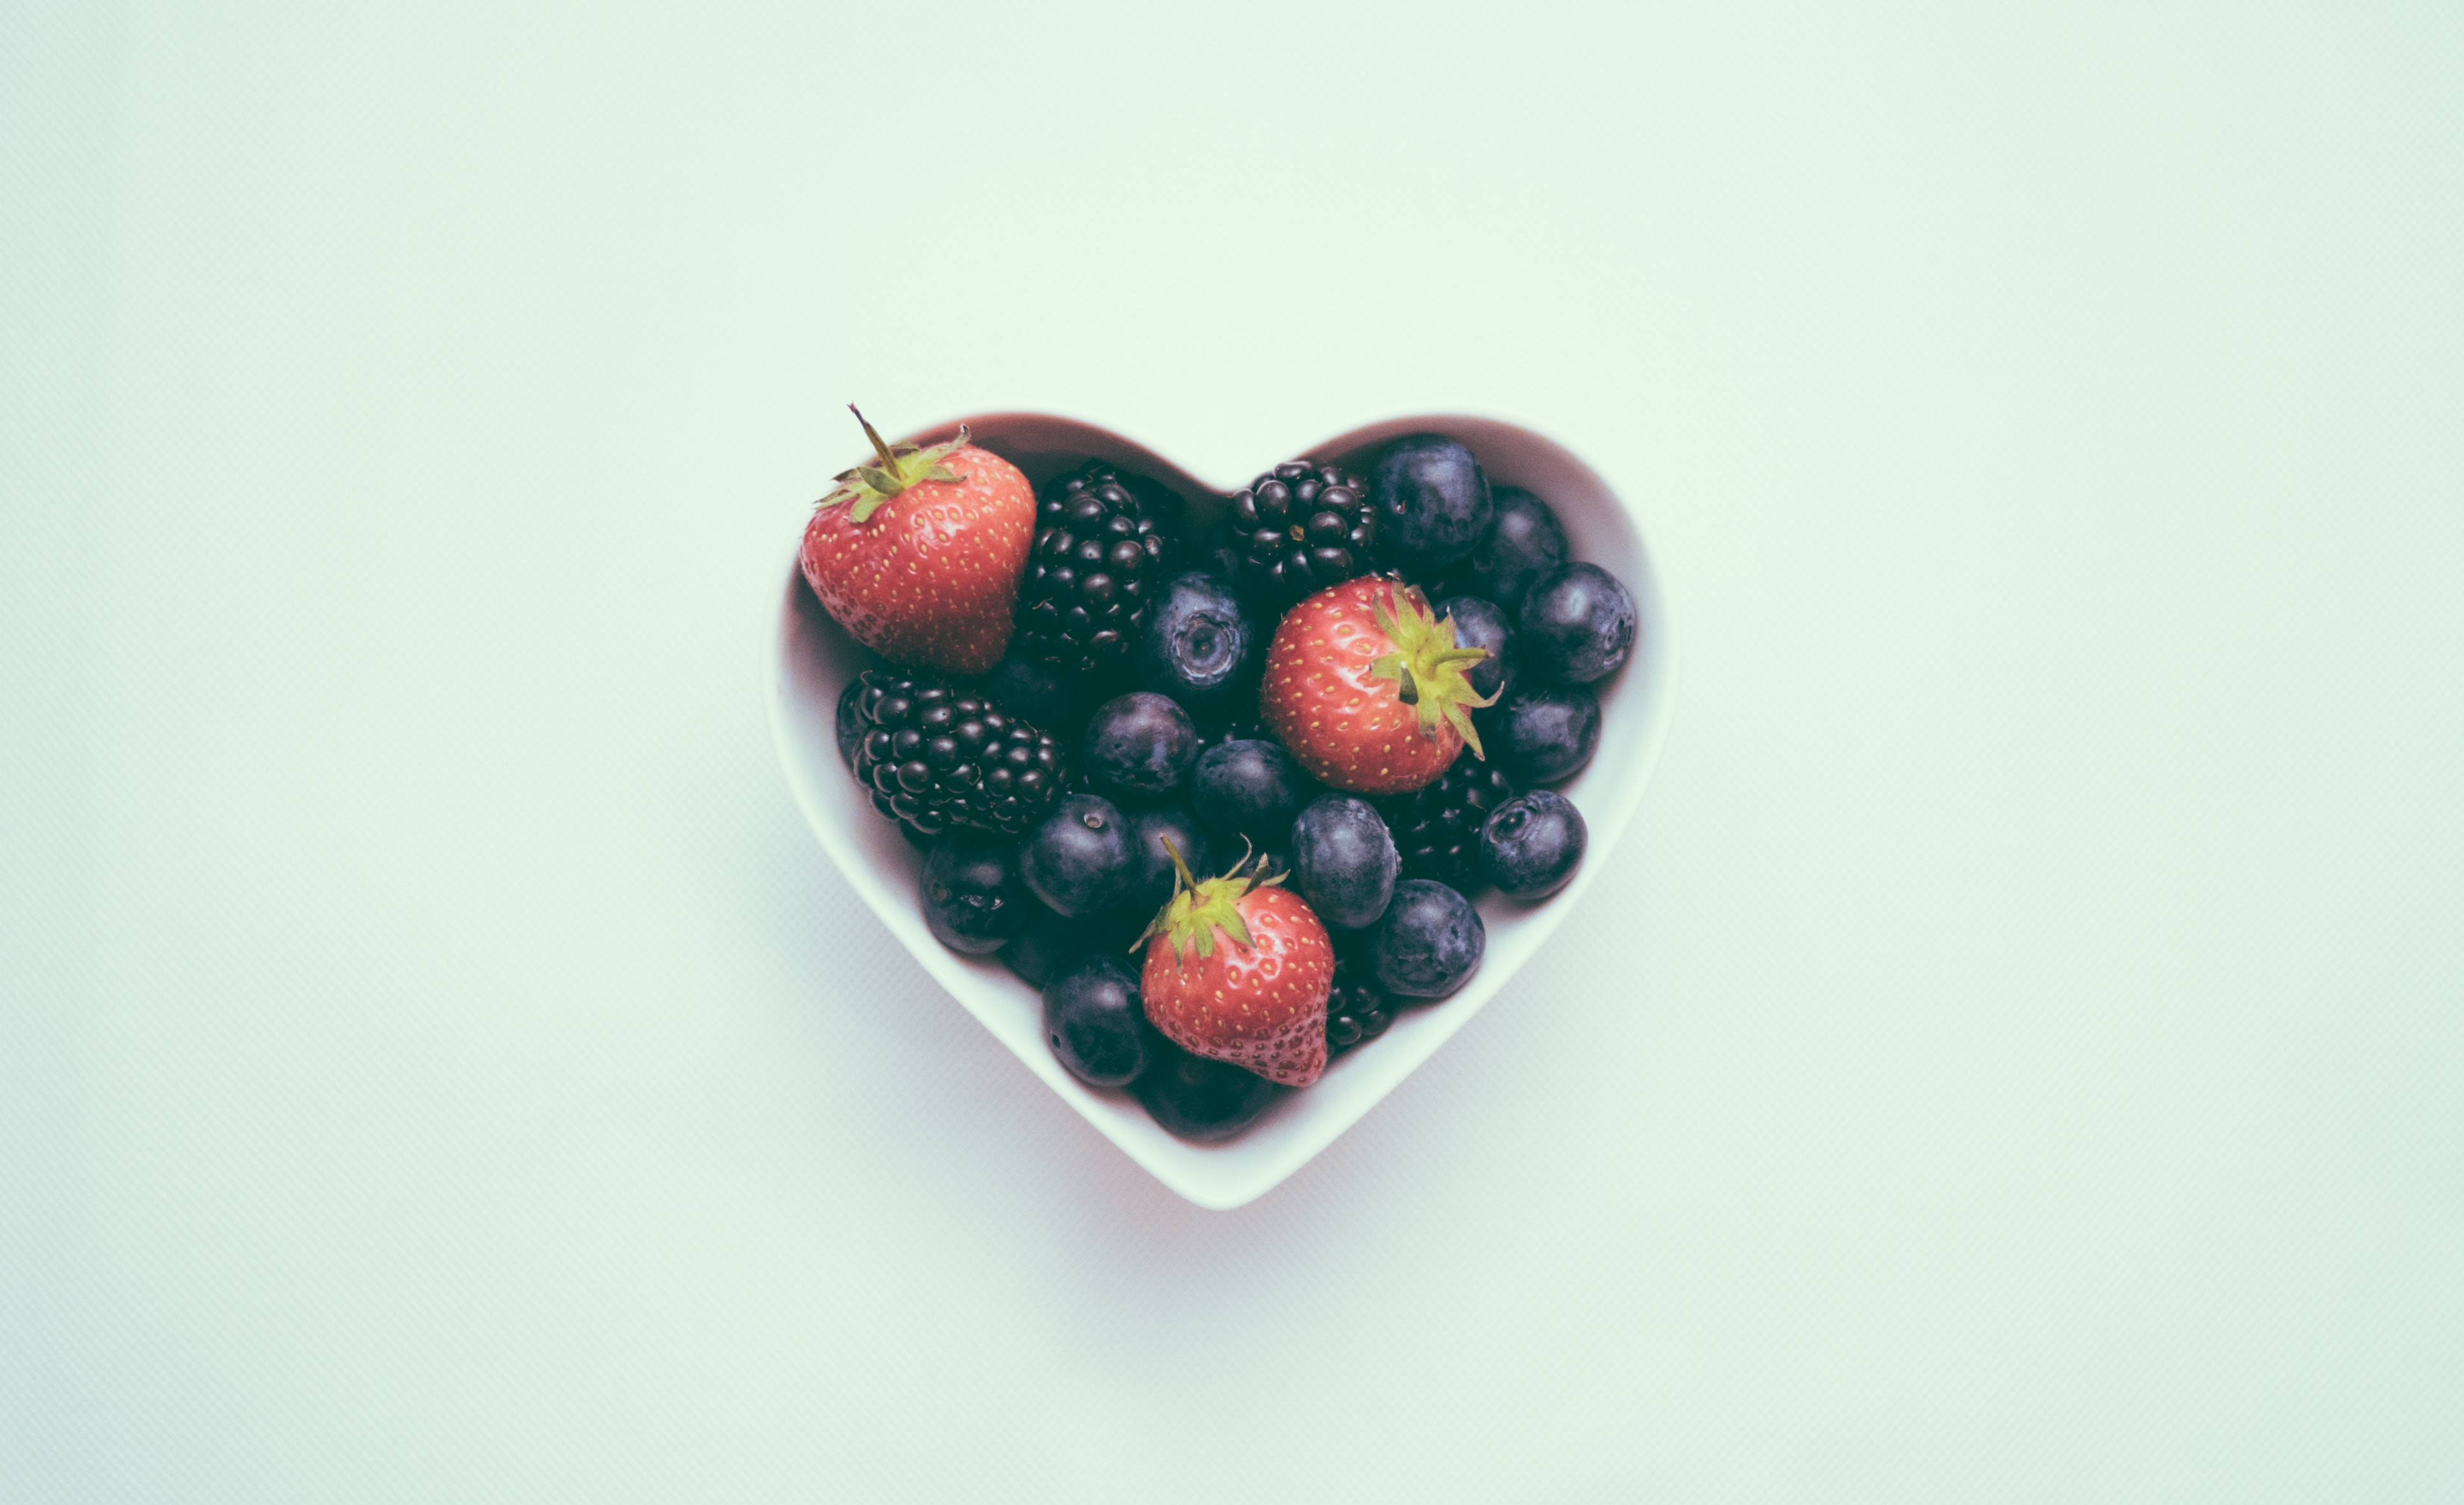 5 things a Nutritionist does daily to promote heart health